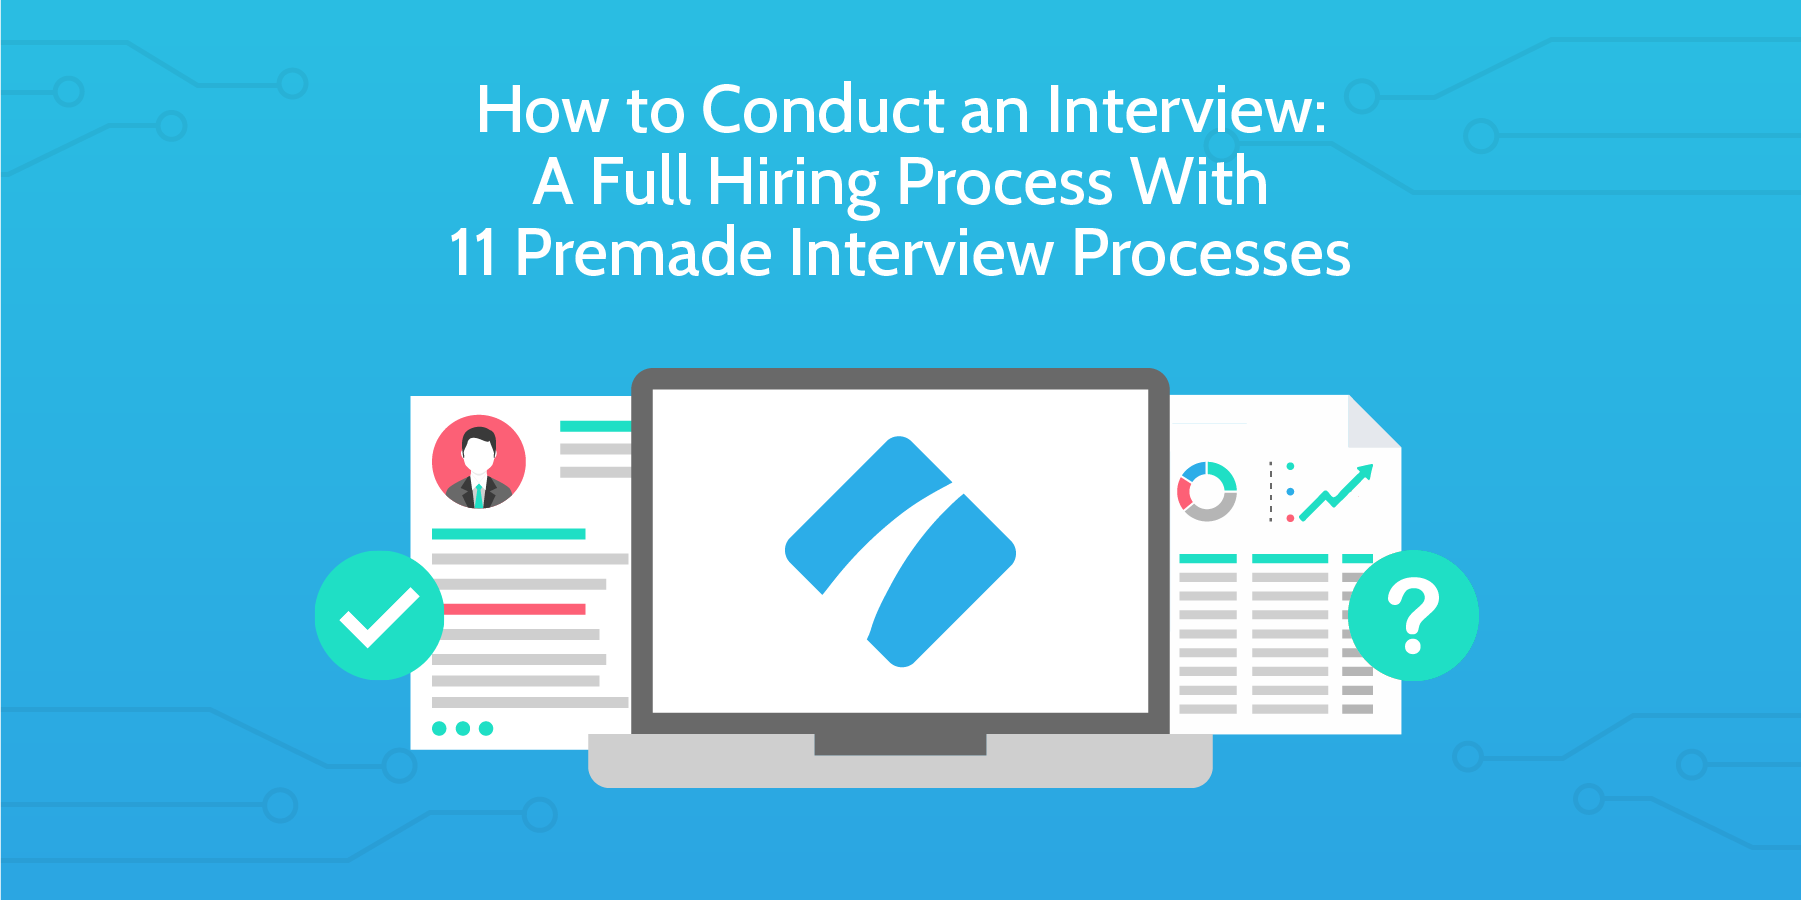 how to conduct an interview header